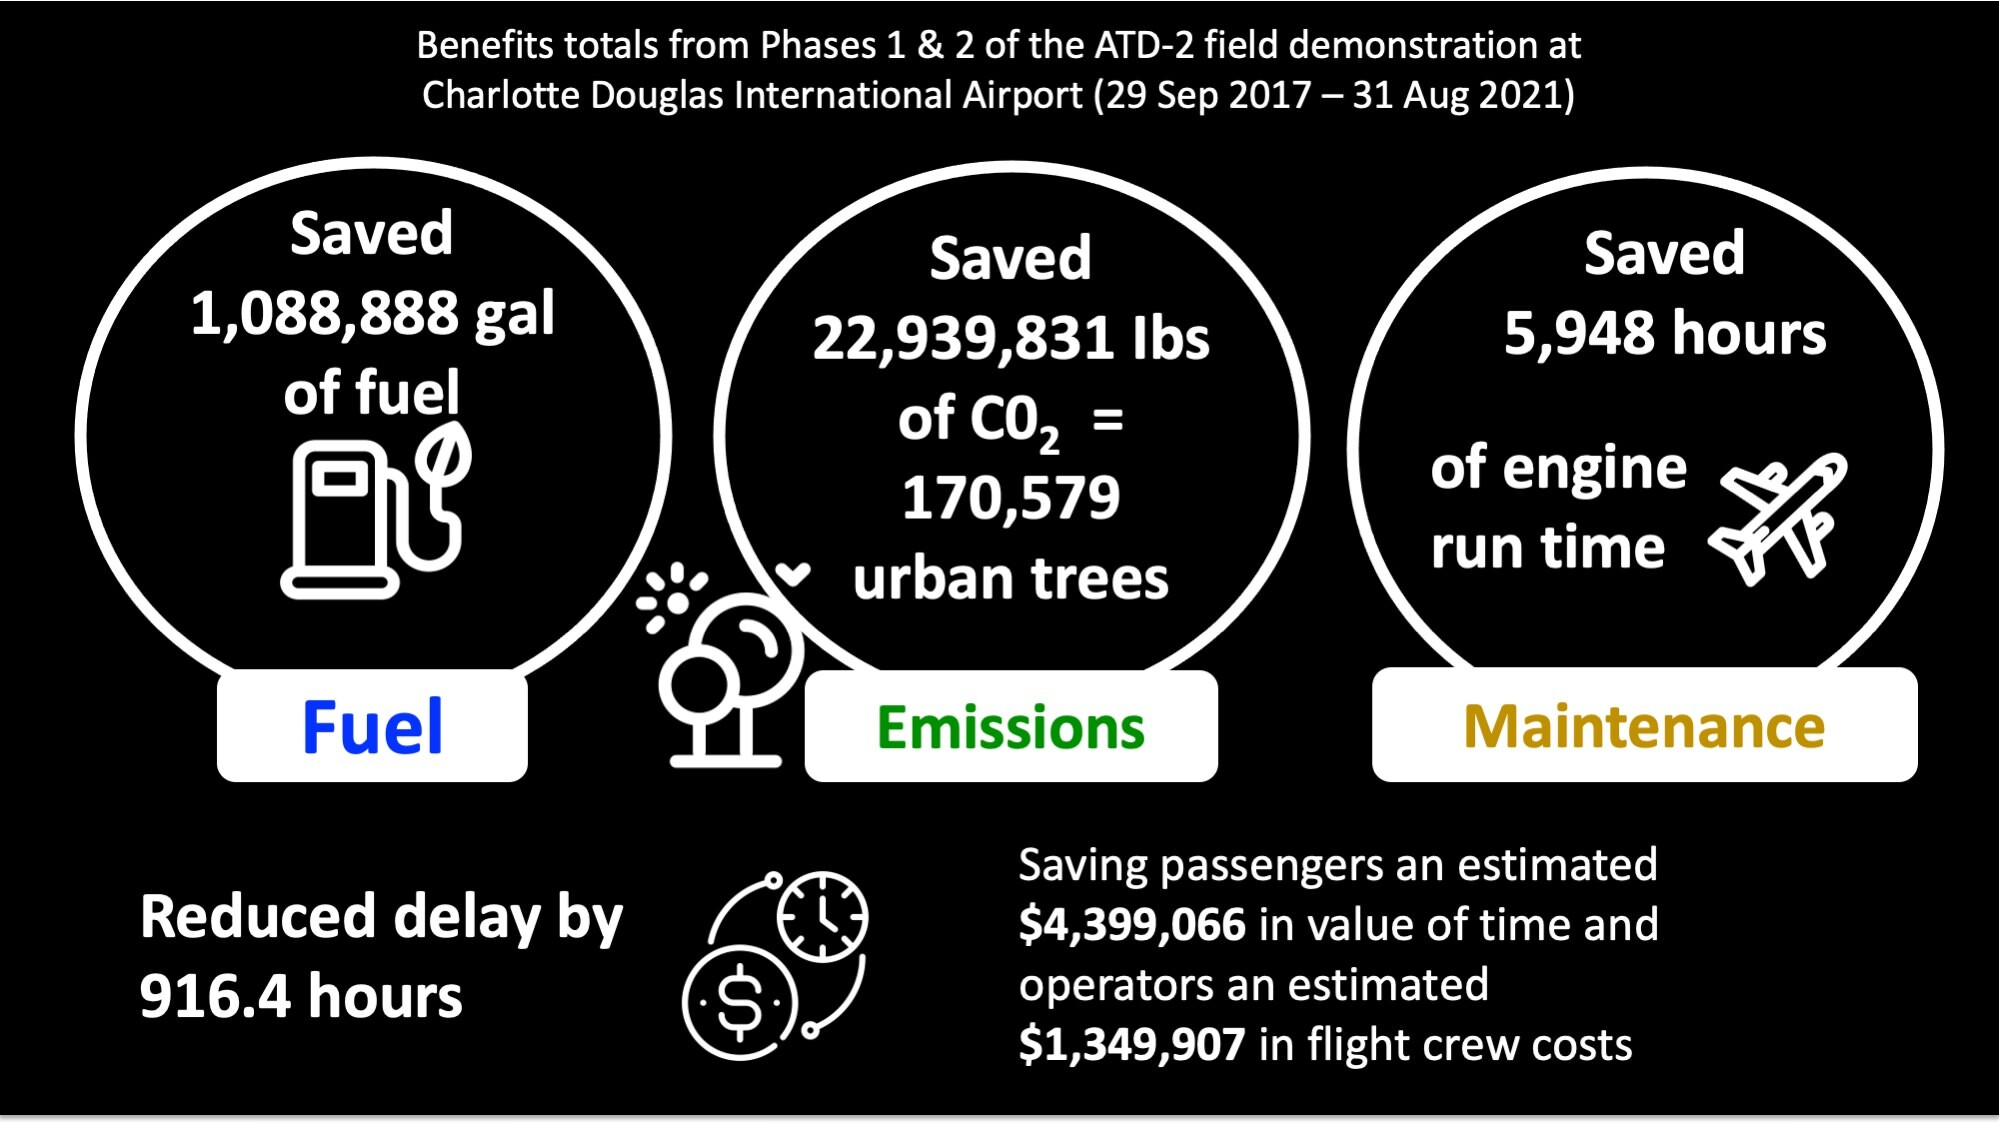 Chart from NASA showing benefits of ATD-2 field demonstration